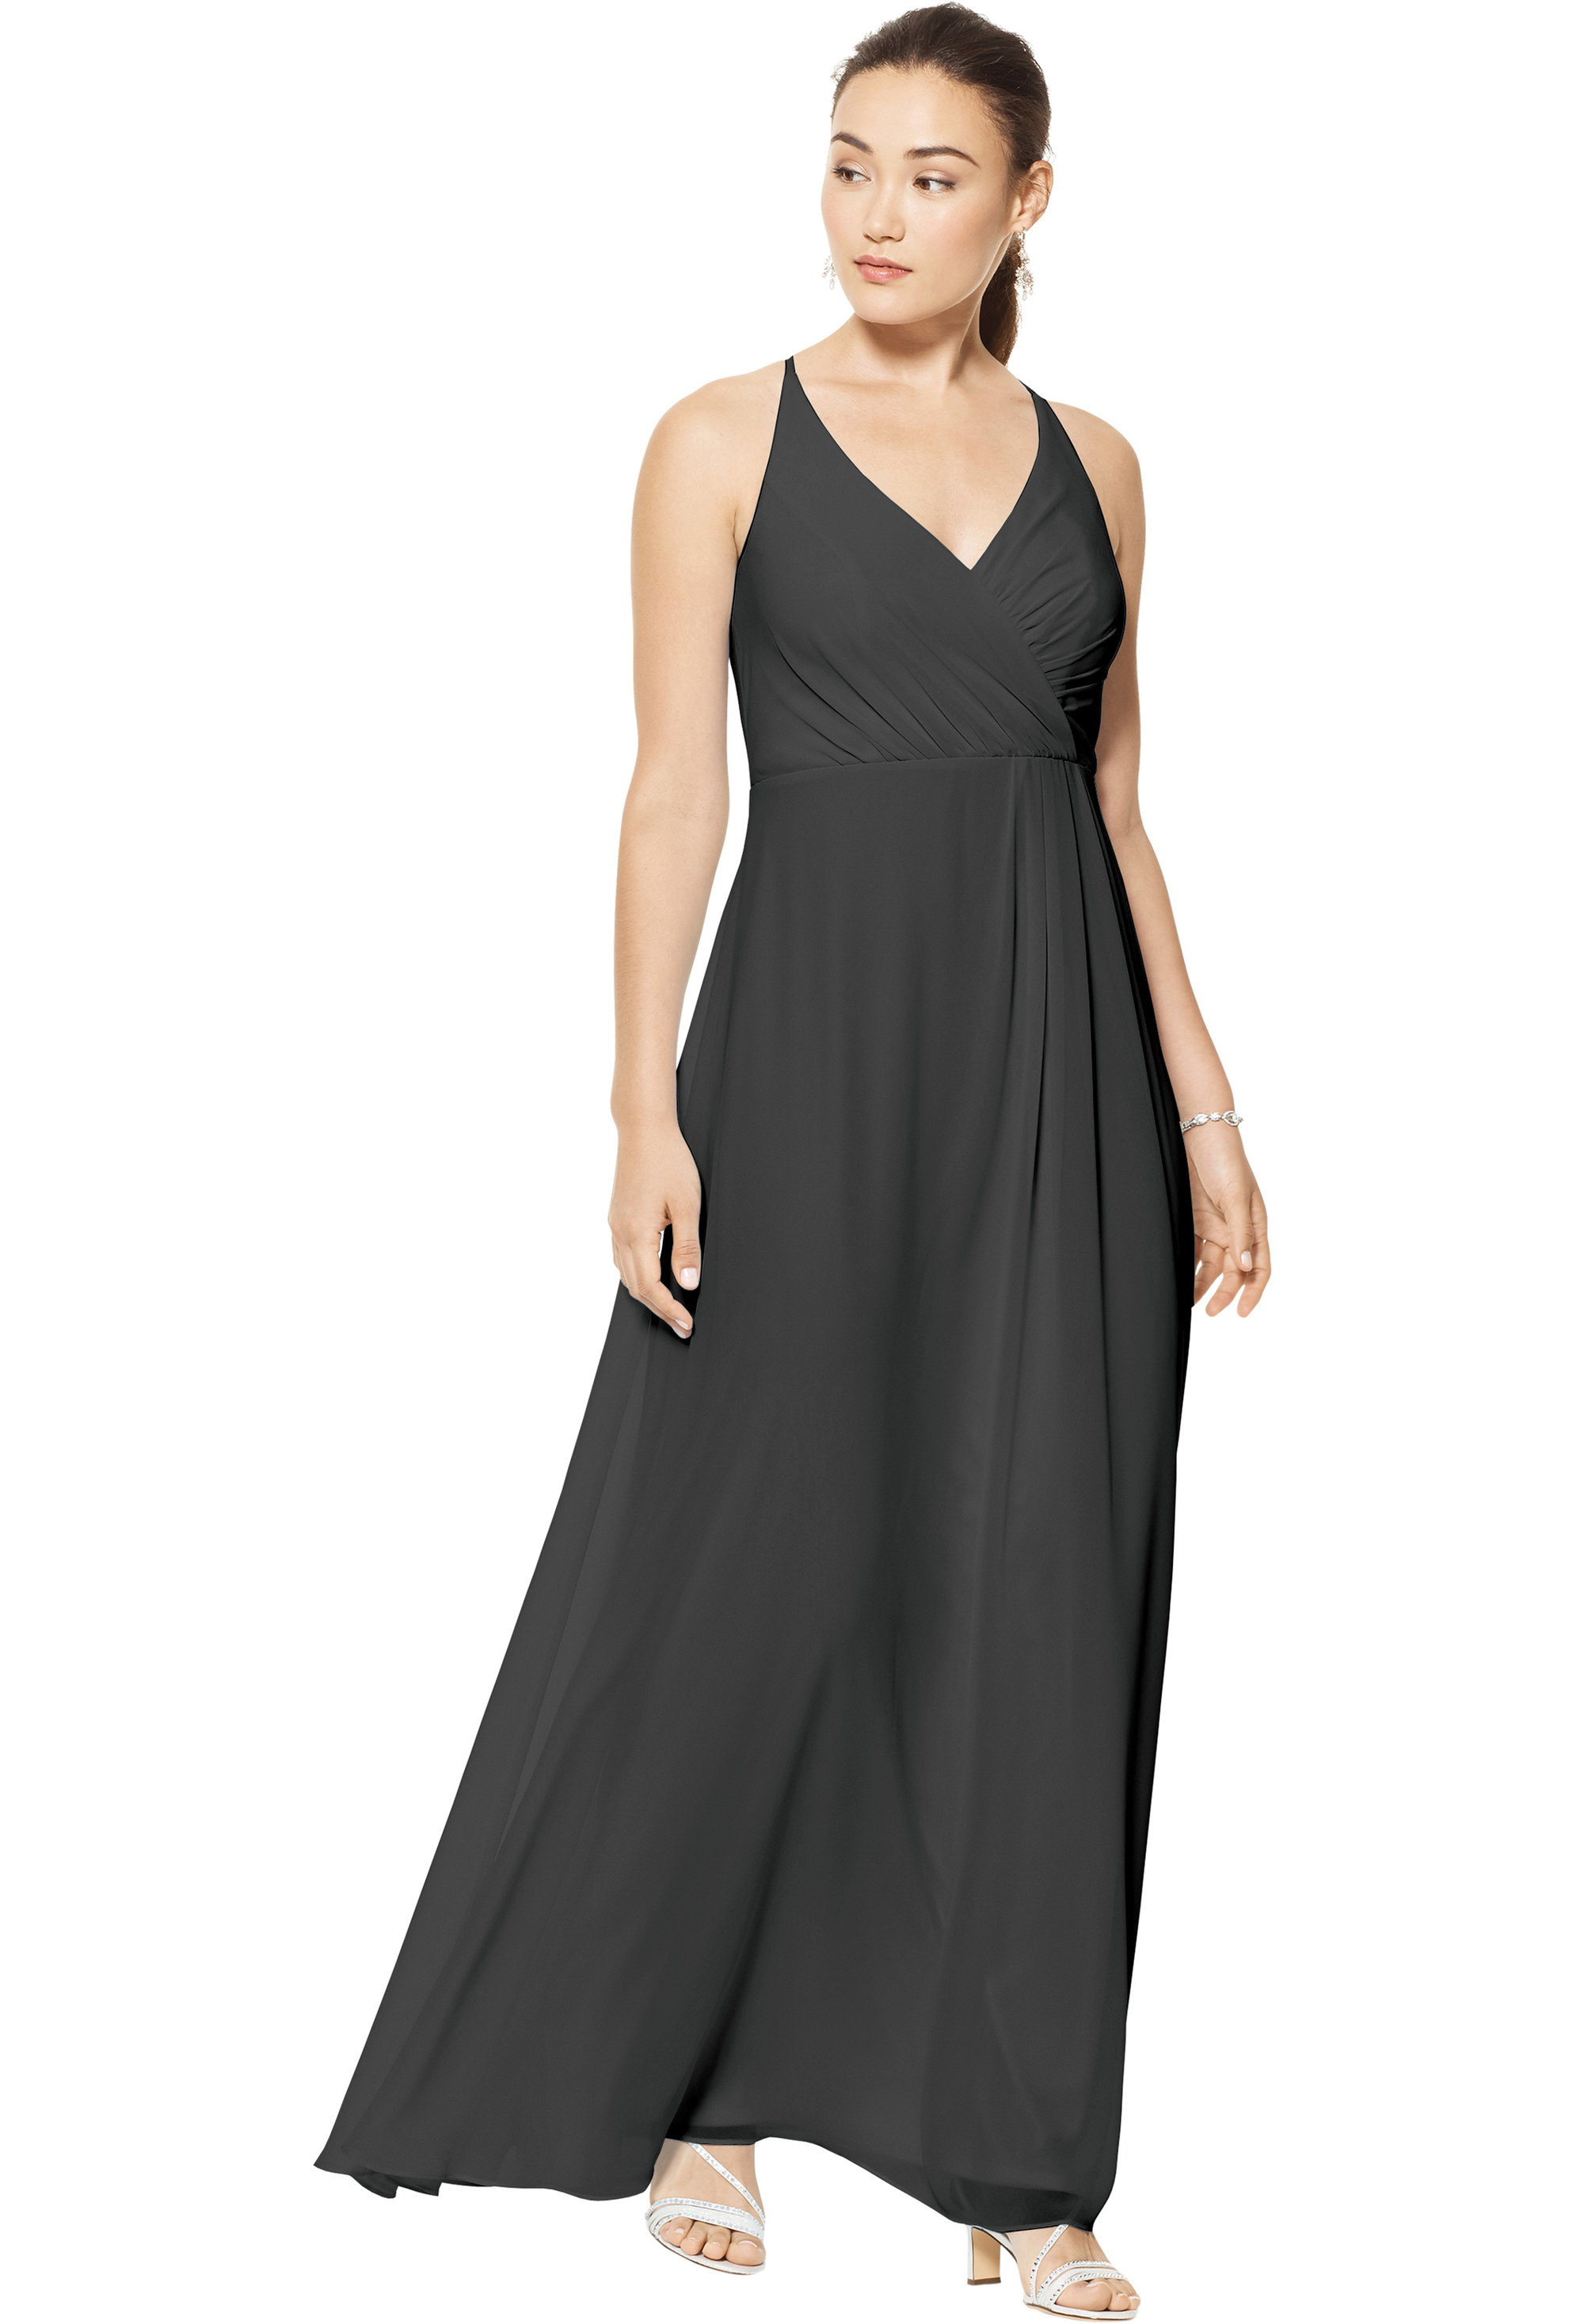 Bill Levkoff CHARCOAL Chiffon V-neck A-line gown, $158.00 Front